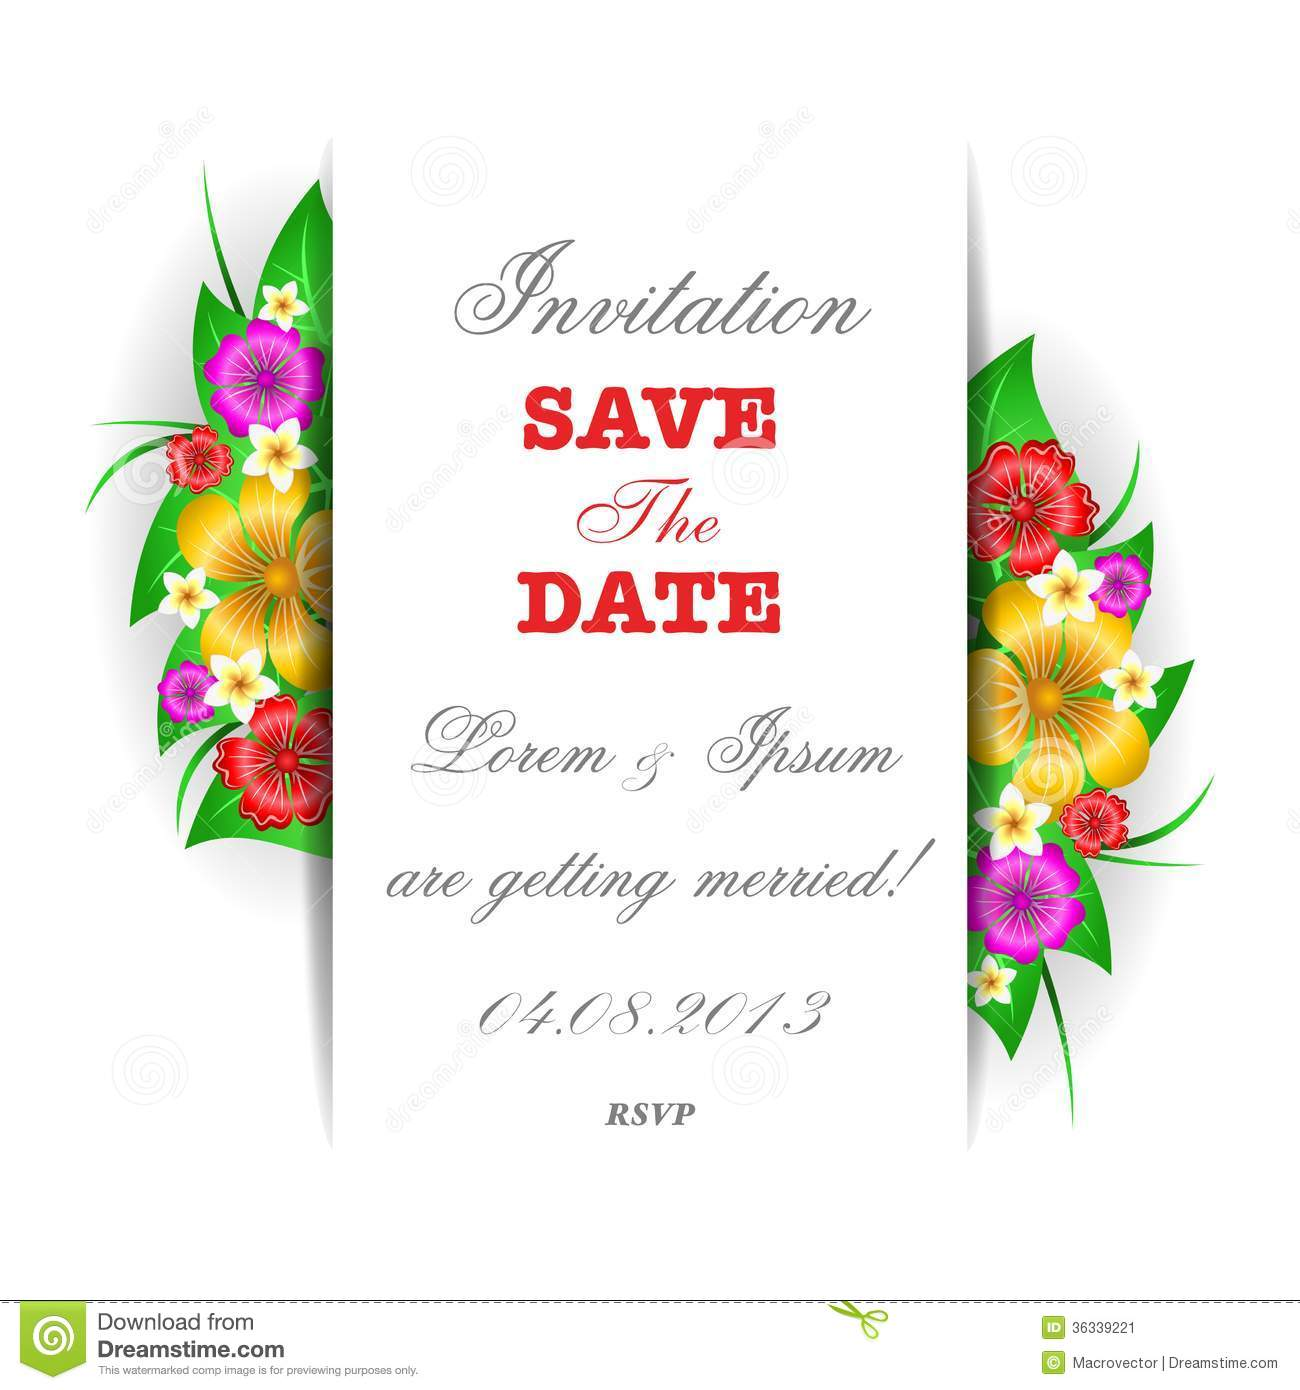 Tropical Invitations with adorable invitations ideas